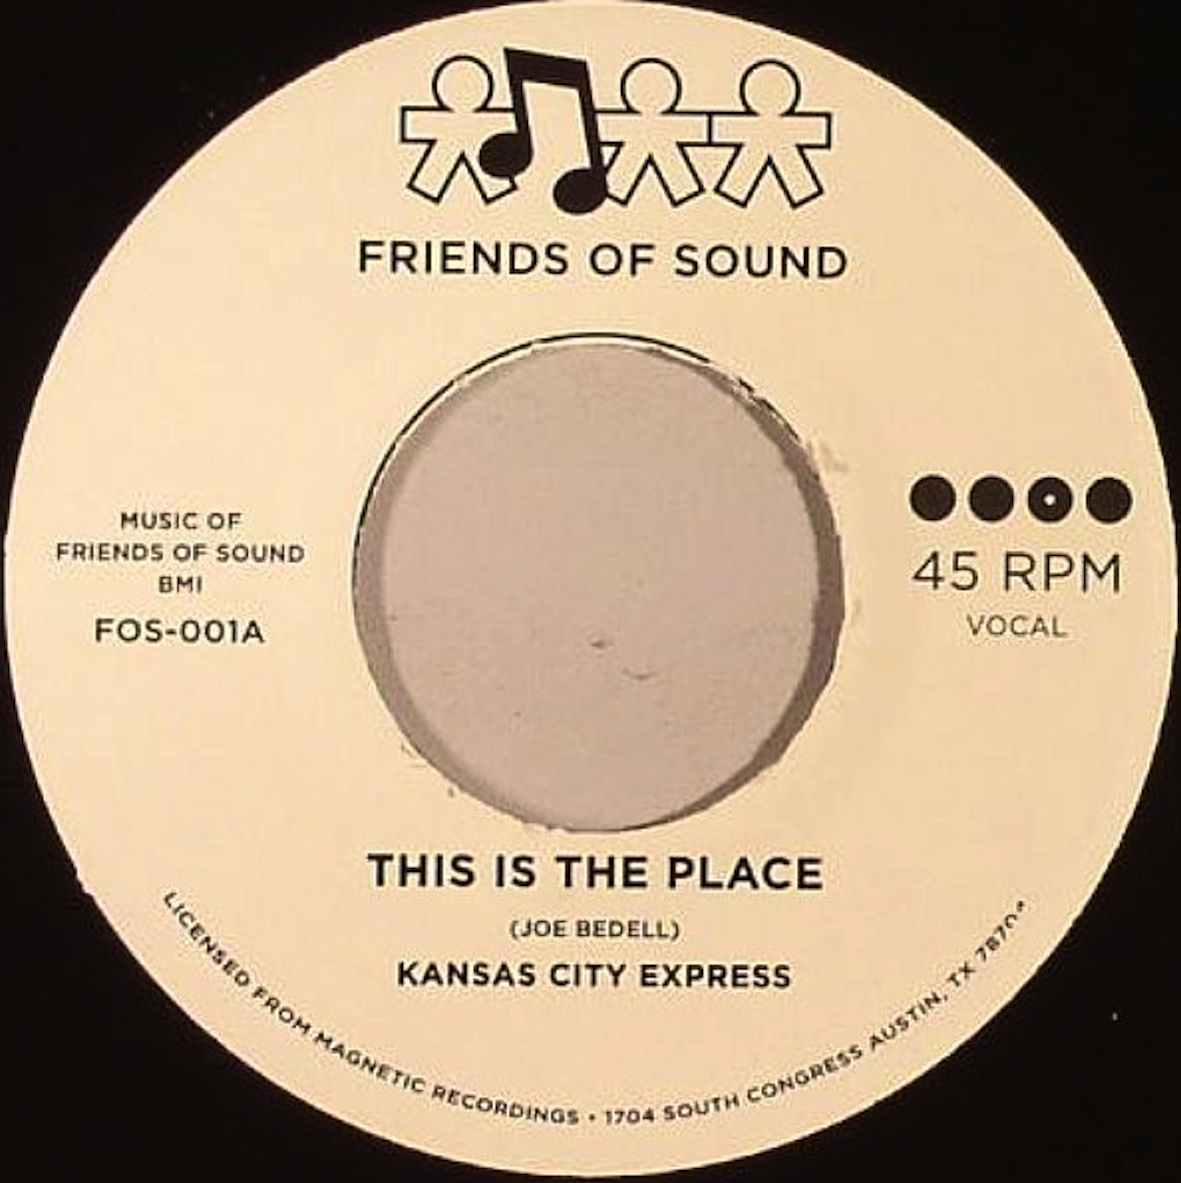 Test Pressing, On The Rebound, Dr Rob, Kansas City Express, This Is The Place, Friends Of Sound, Magnetic Recordings